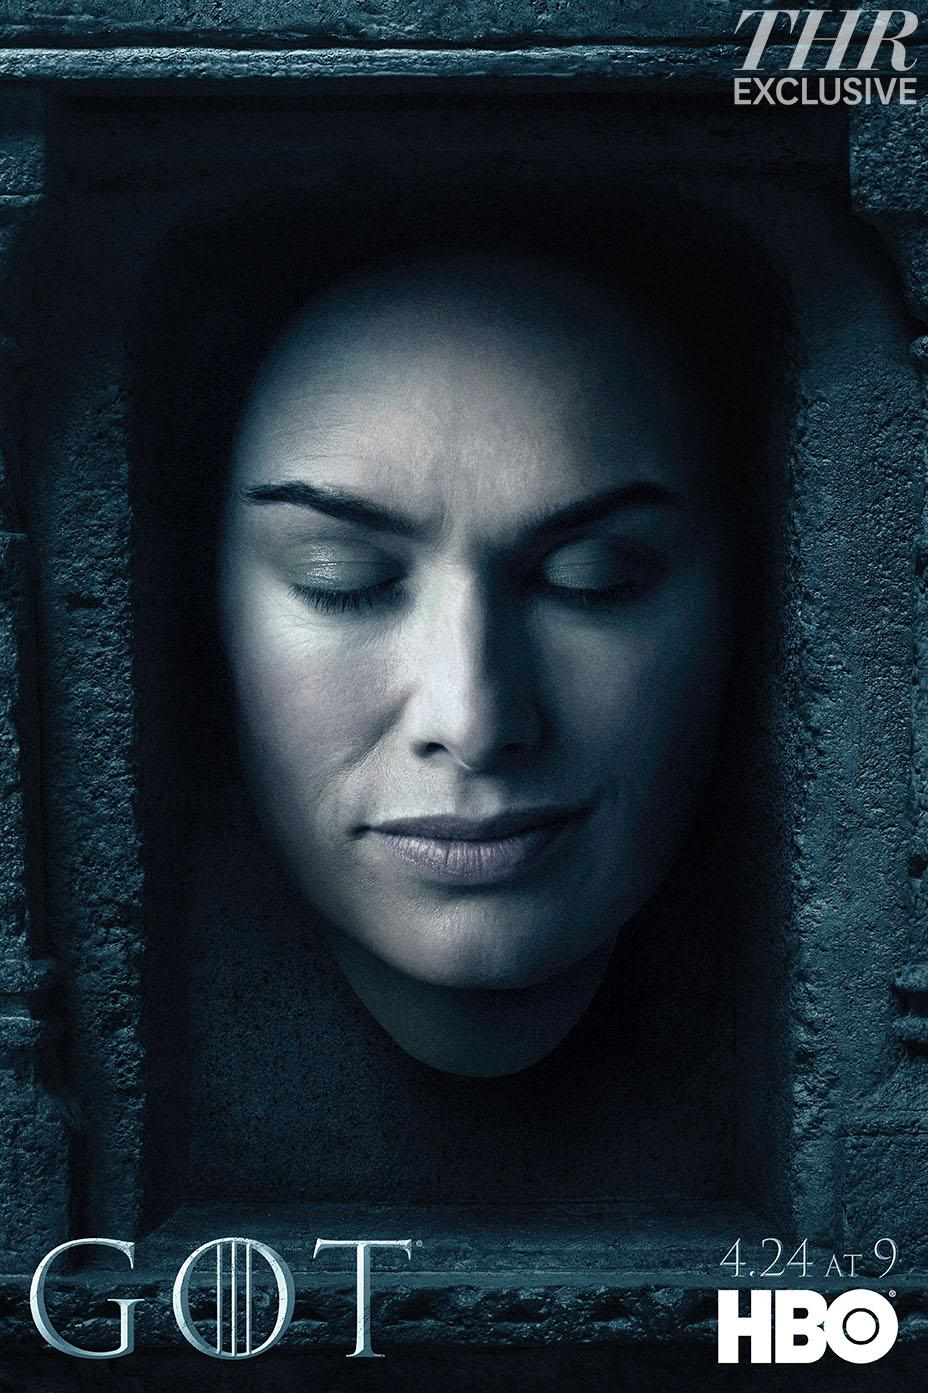 Game of Thrones teases season 6 with Hall of Faces posters 928x1393